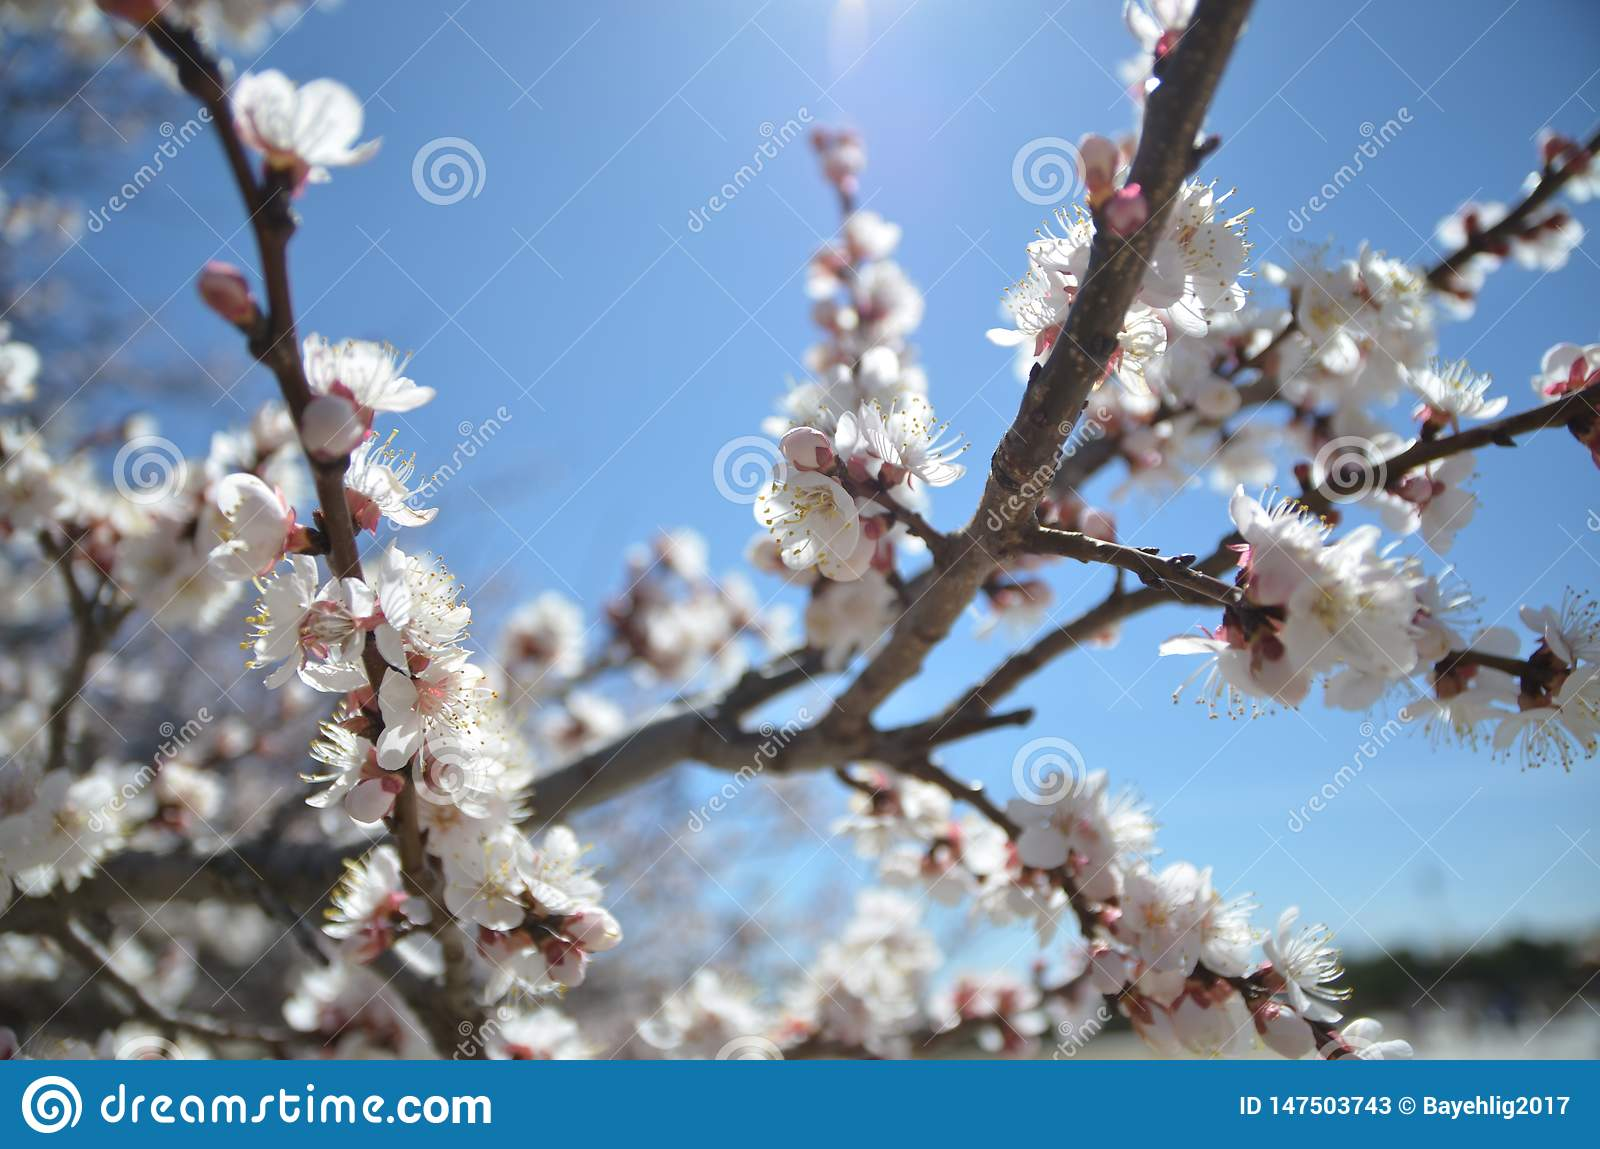 Plum blossom from the bitter cold